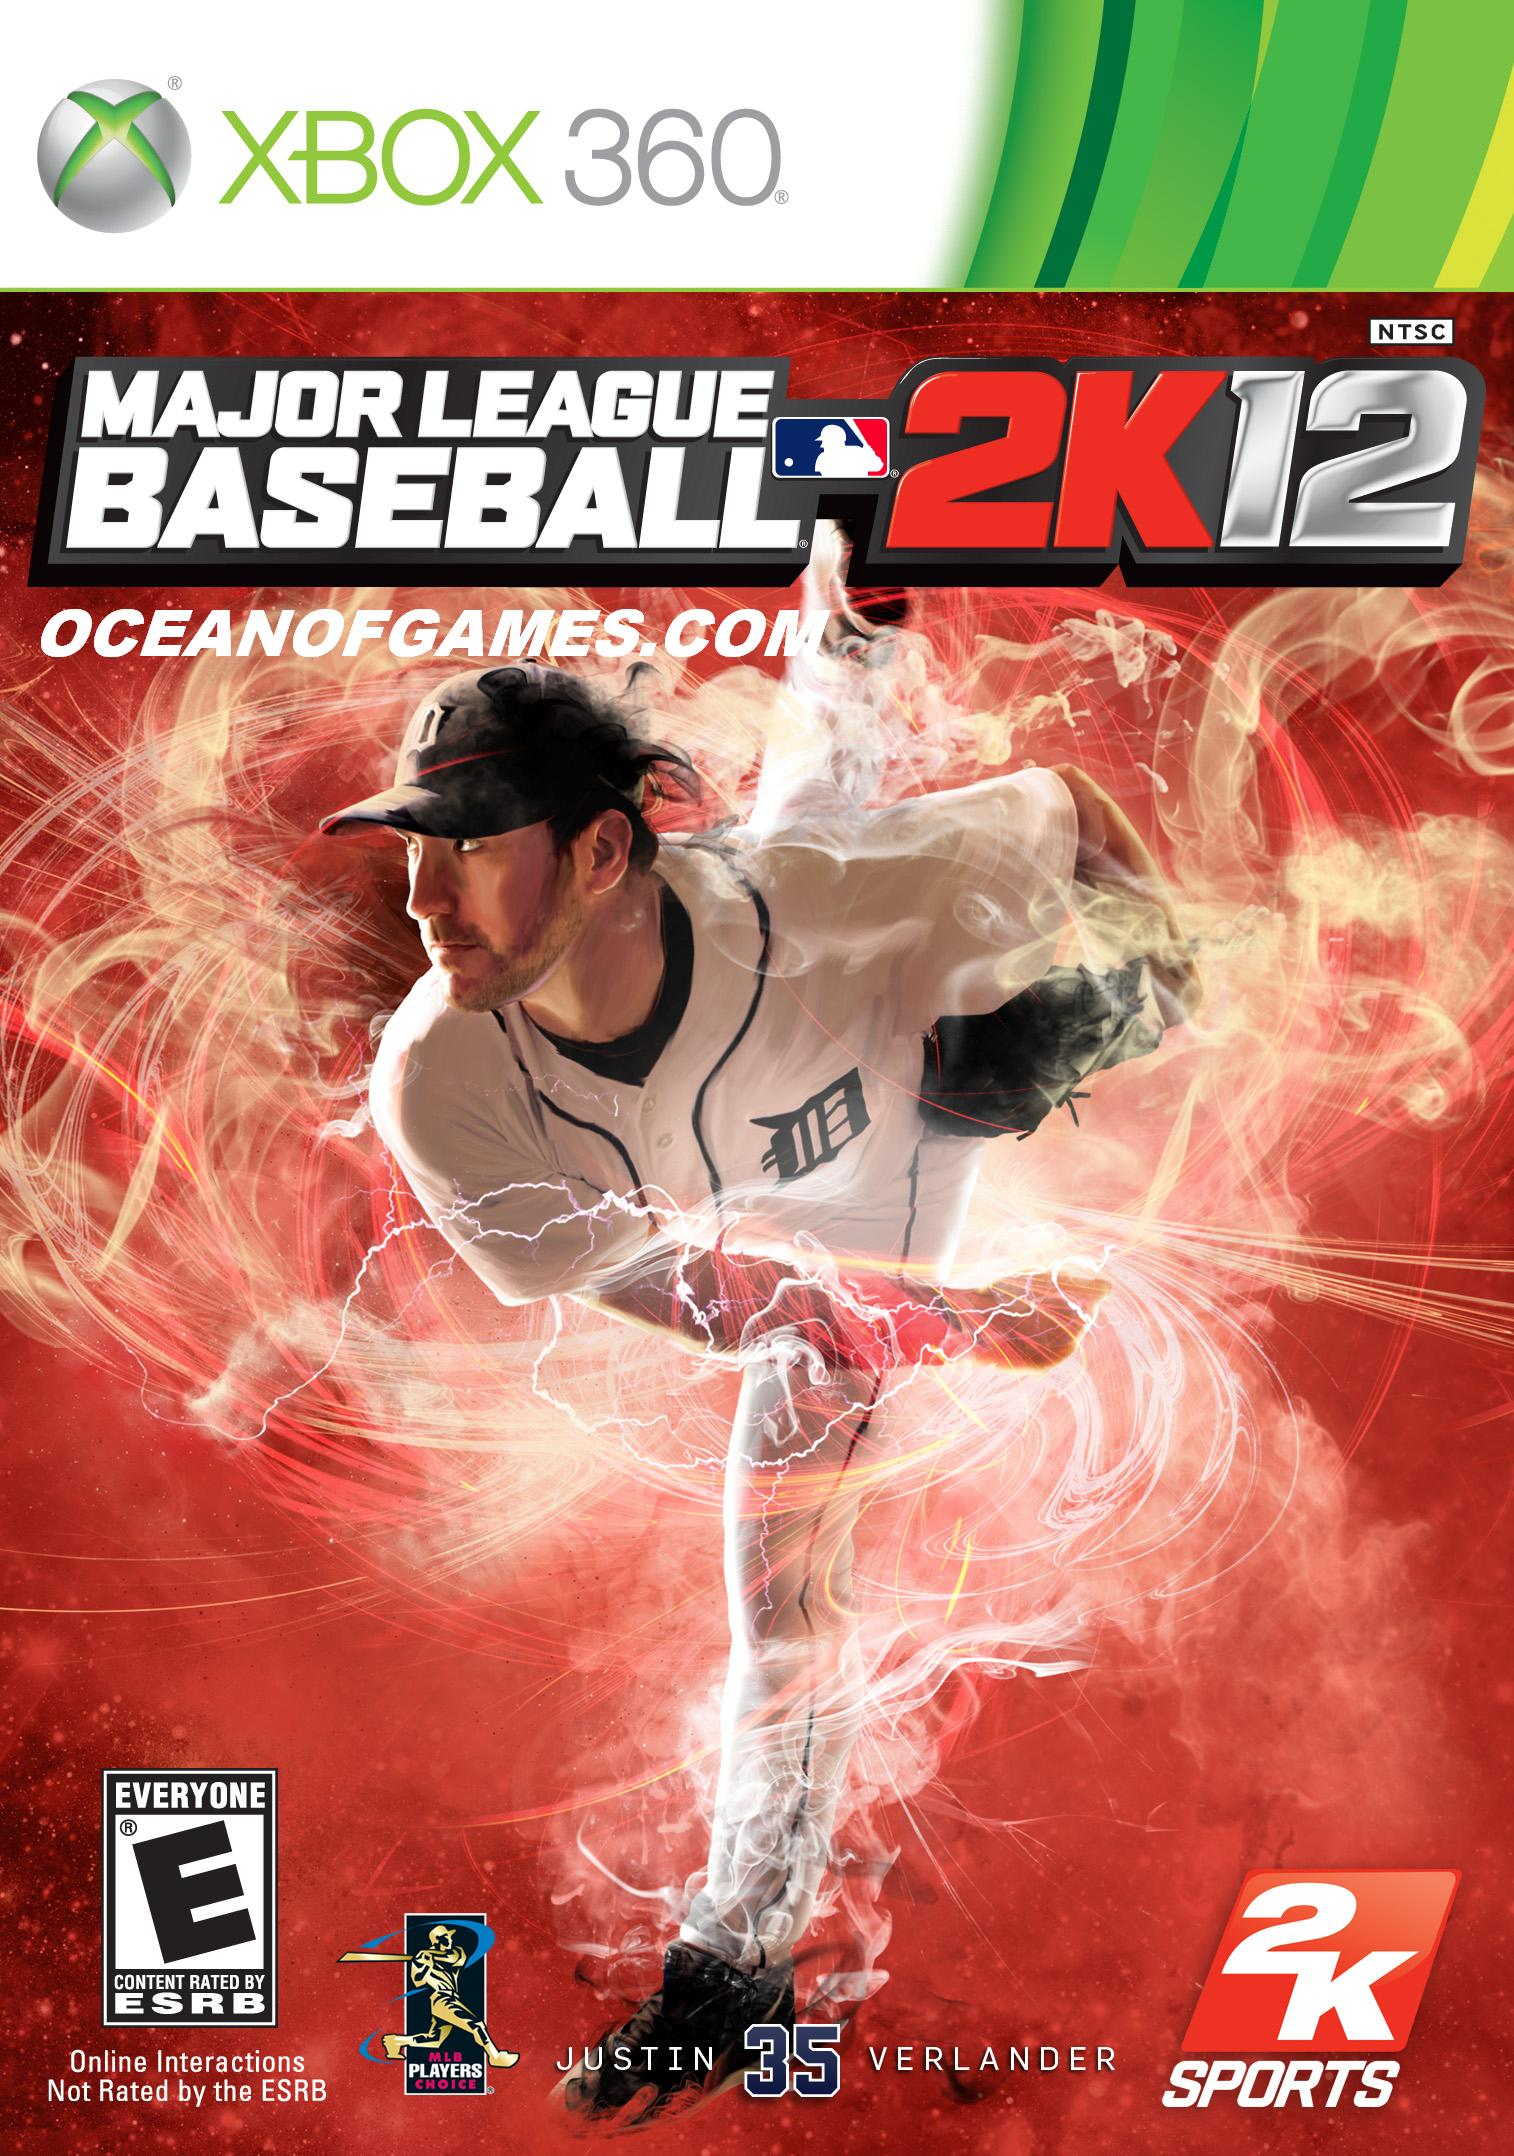 Major League Baseball 2K12 free download